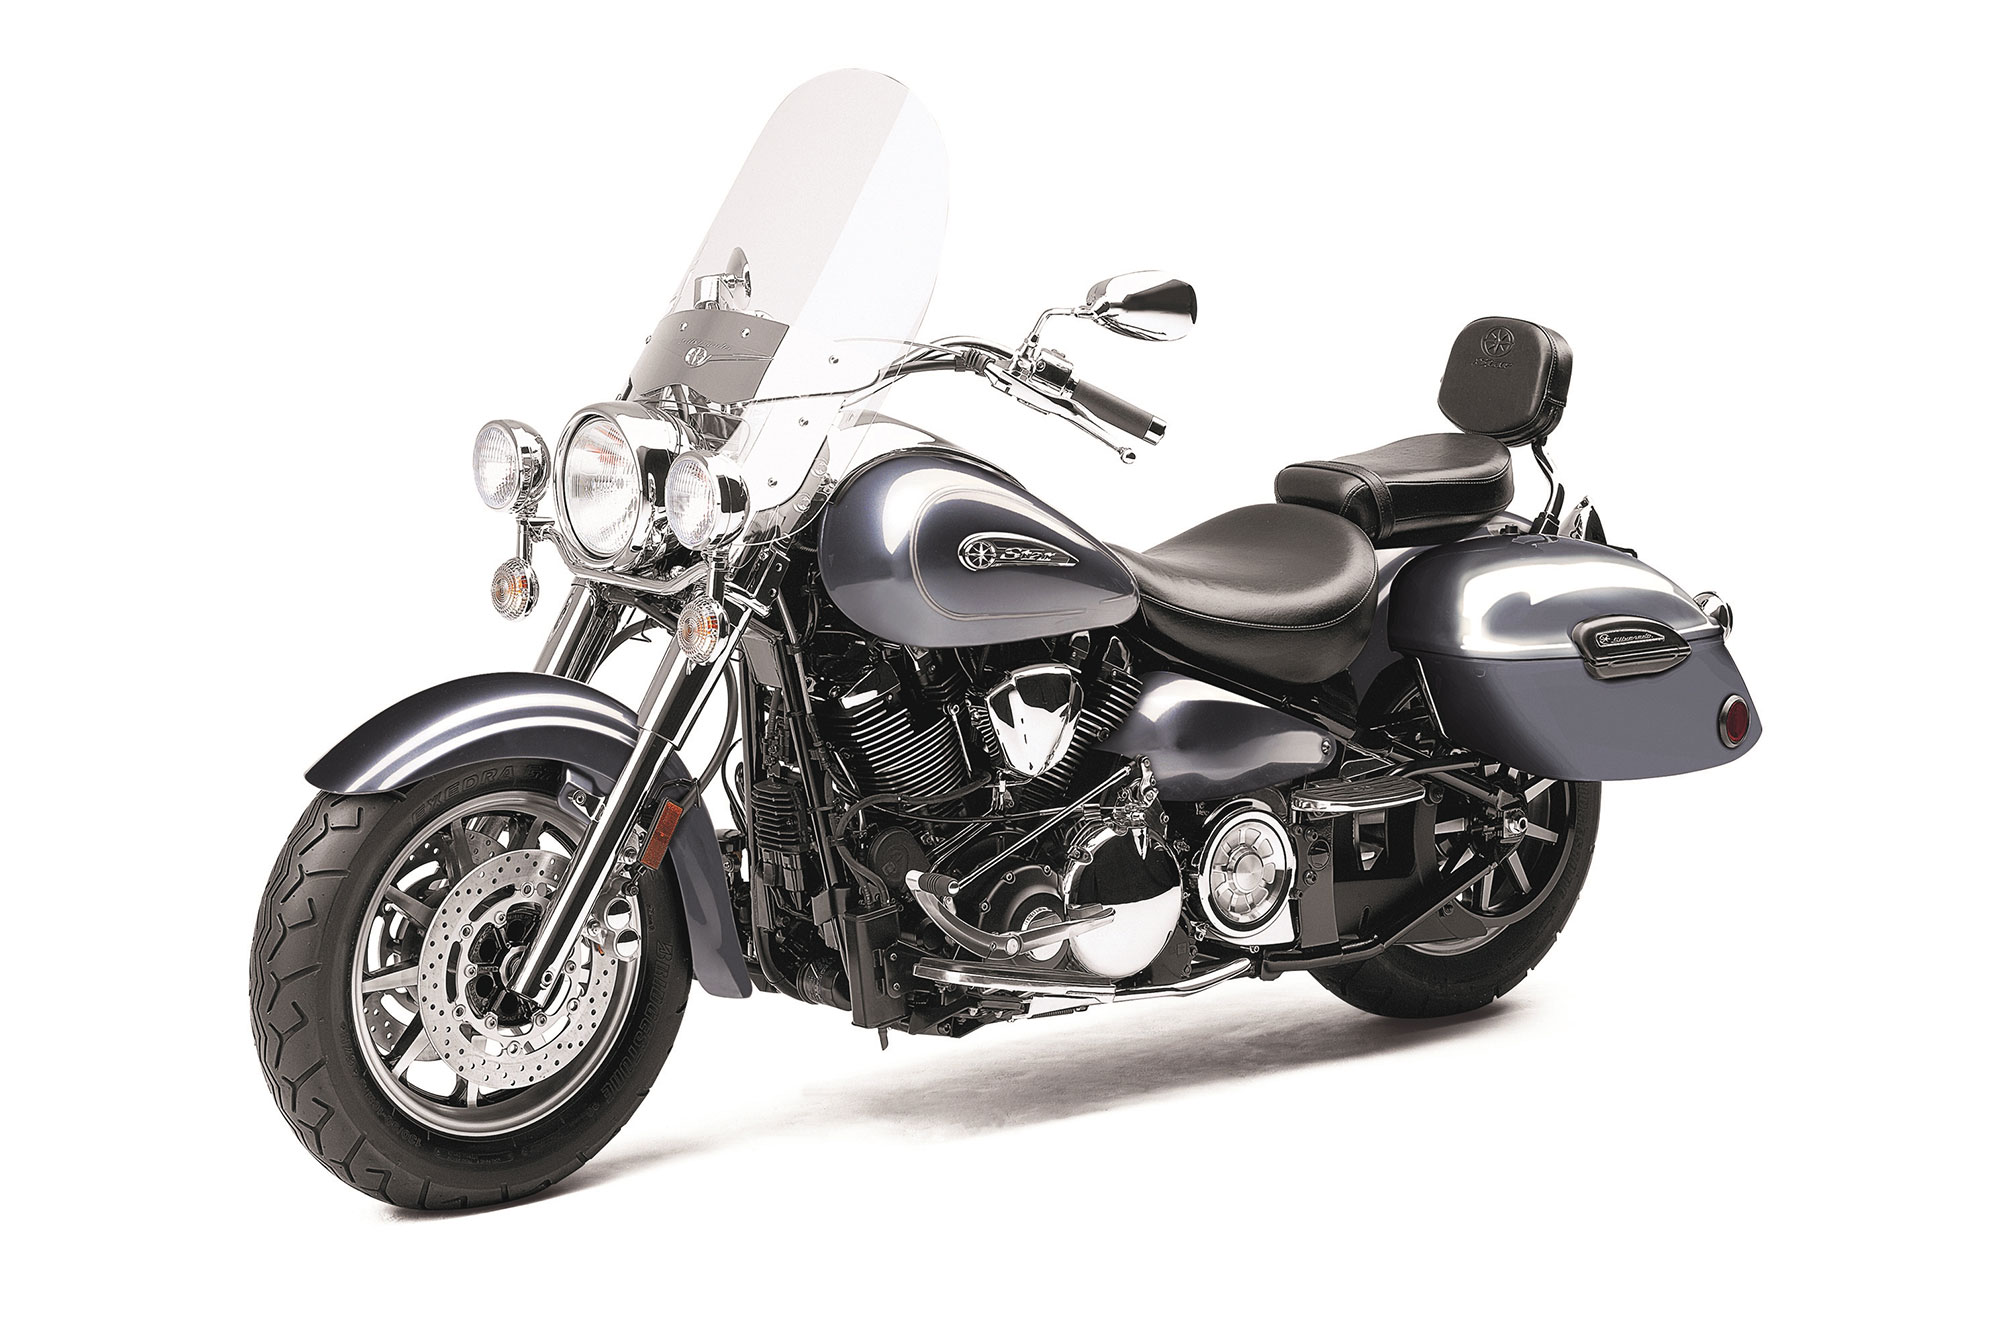 2014 yamaha road star silverado s review for Yamaha road motorcycles